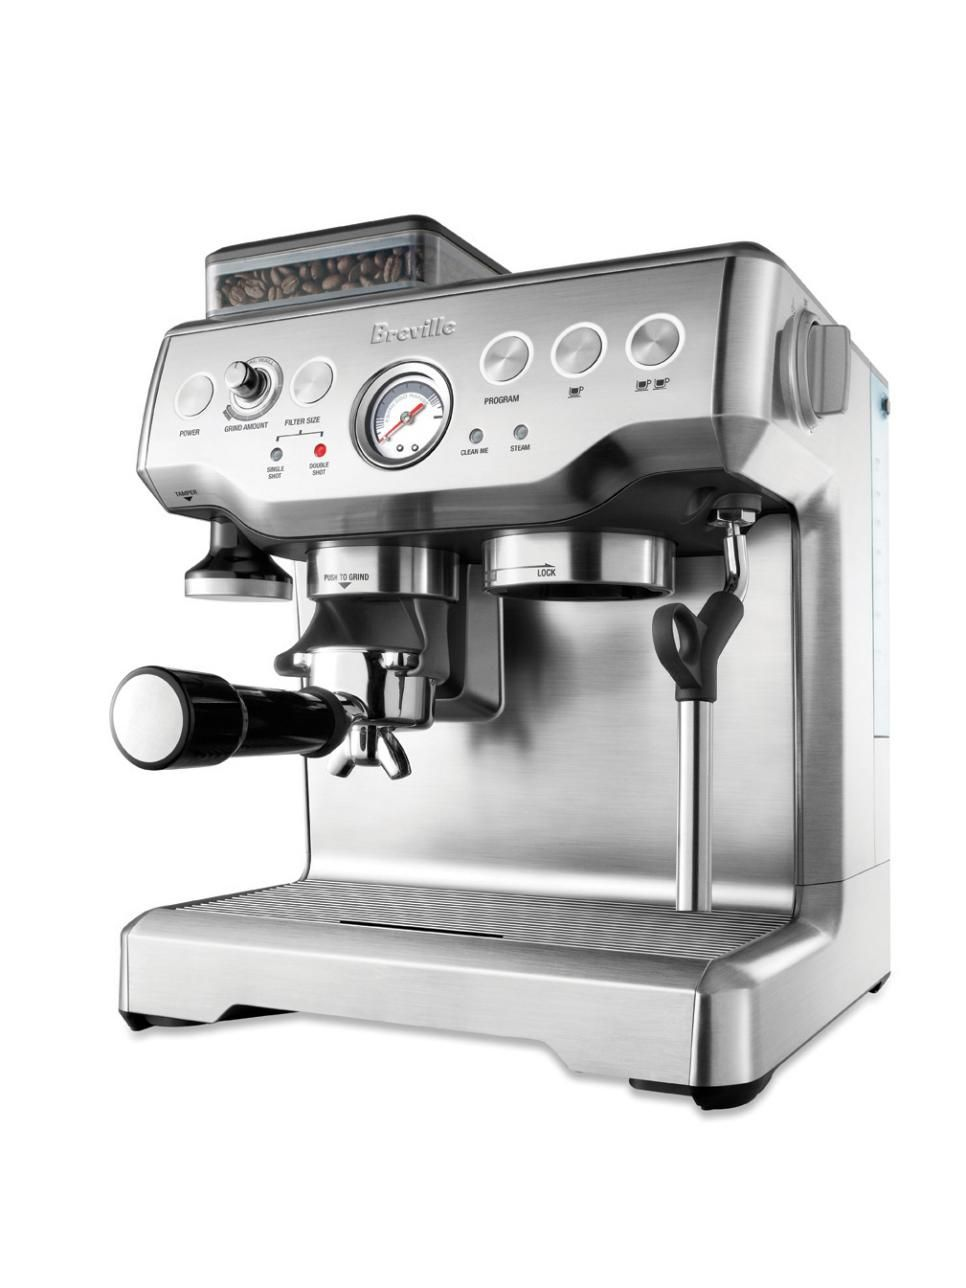 Best Place To Buy Breville Espresso Machine